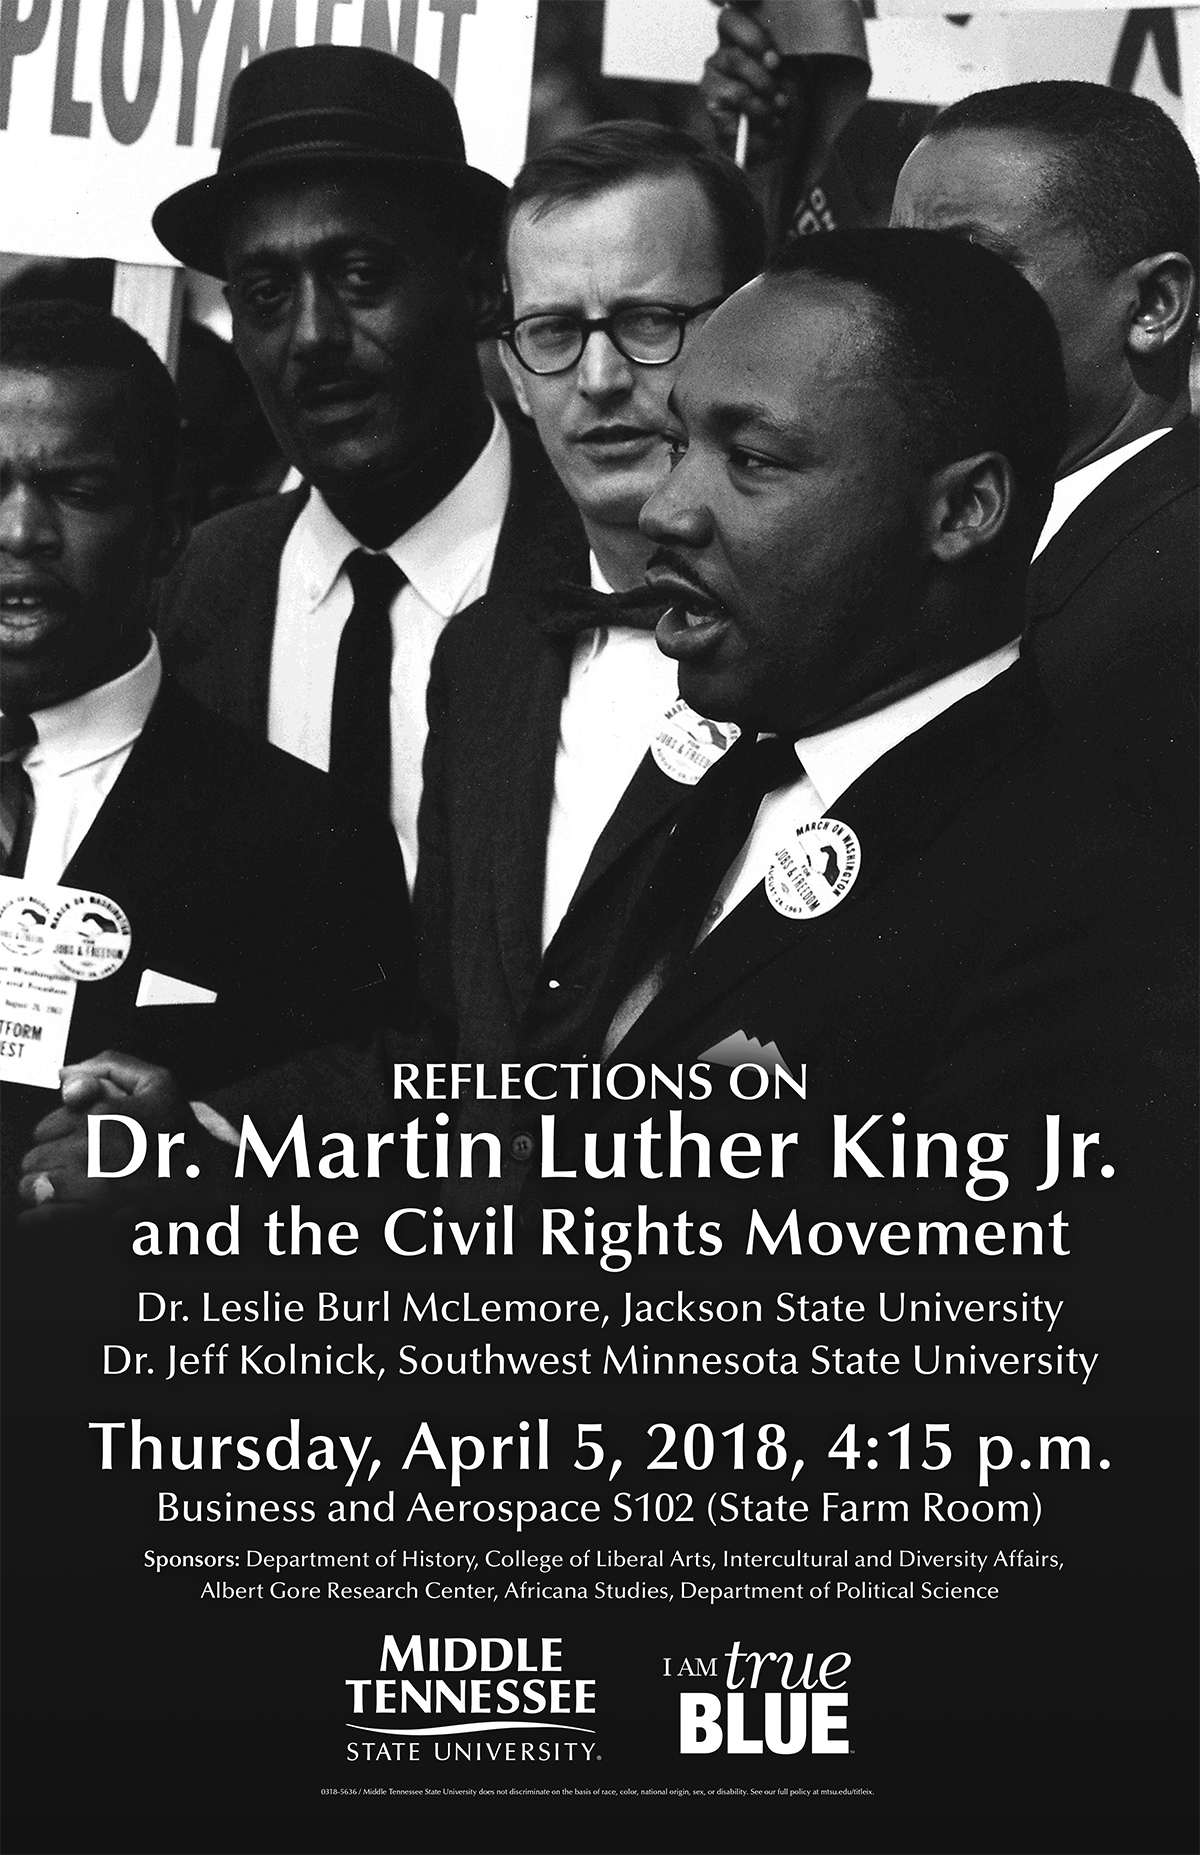 Civil rights activist, colleague visit MTSU Thursday to reflect on MLK and social justice